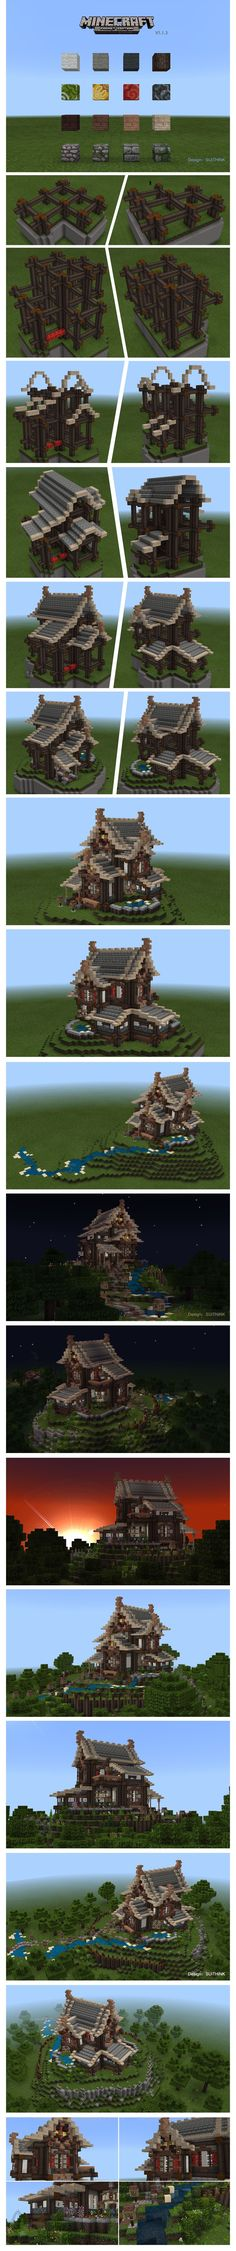 I recognise that build style from the tutorial with the house and the green roof - minecraft